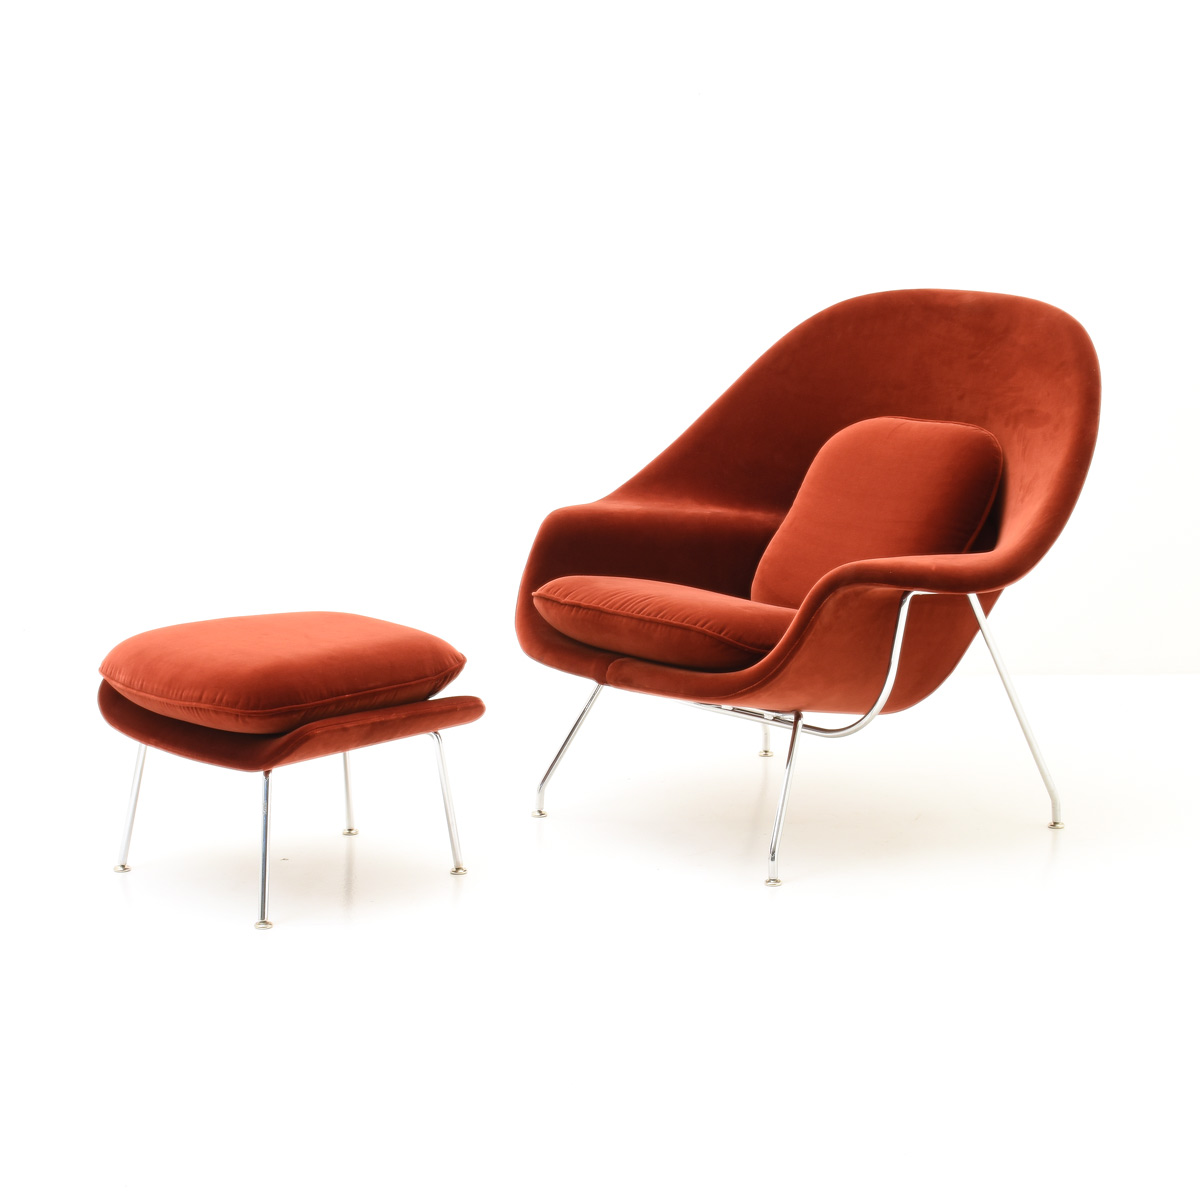 Sessel, Womb Chair, Saarinen